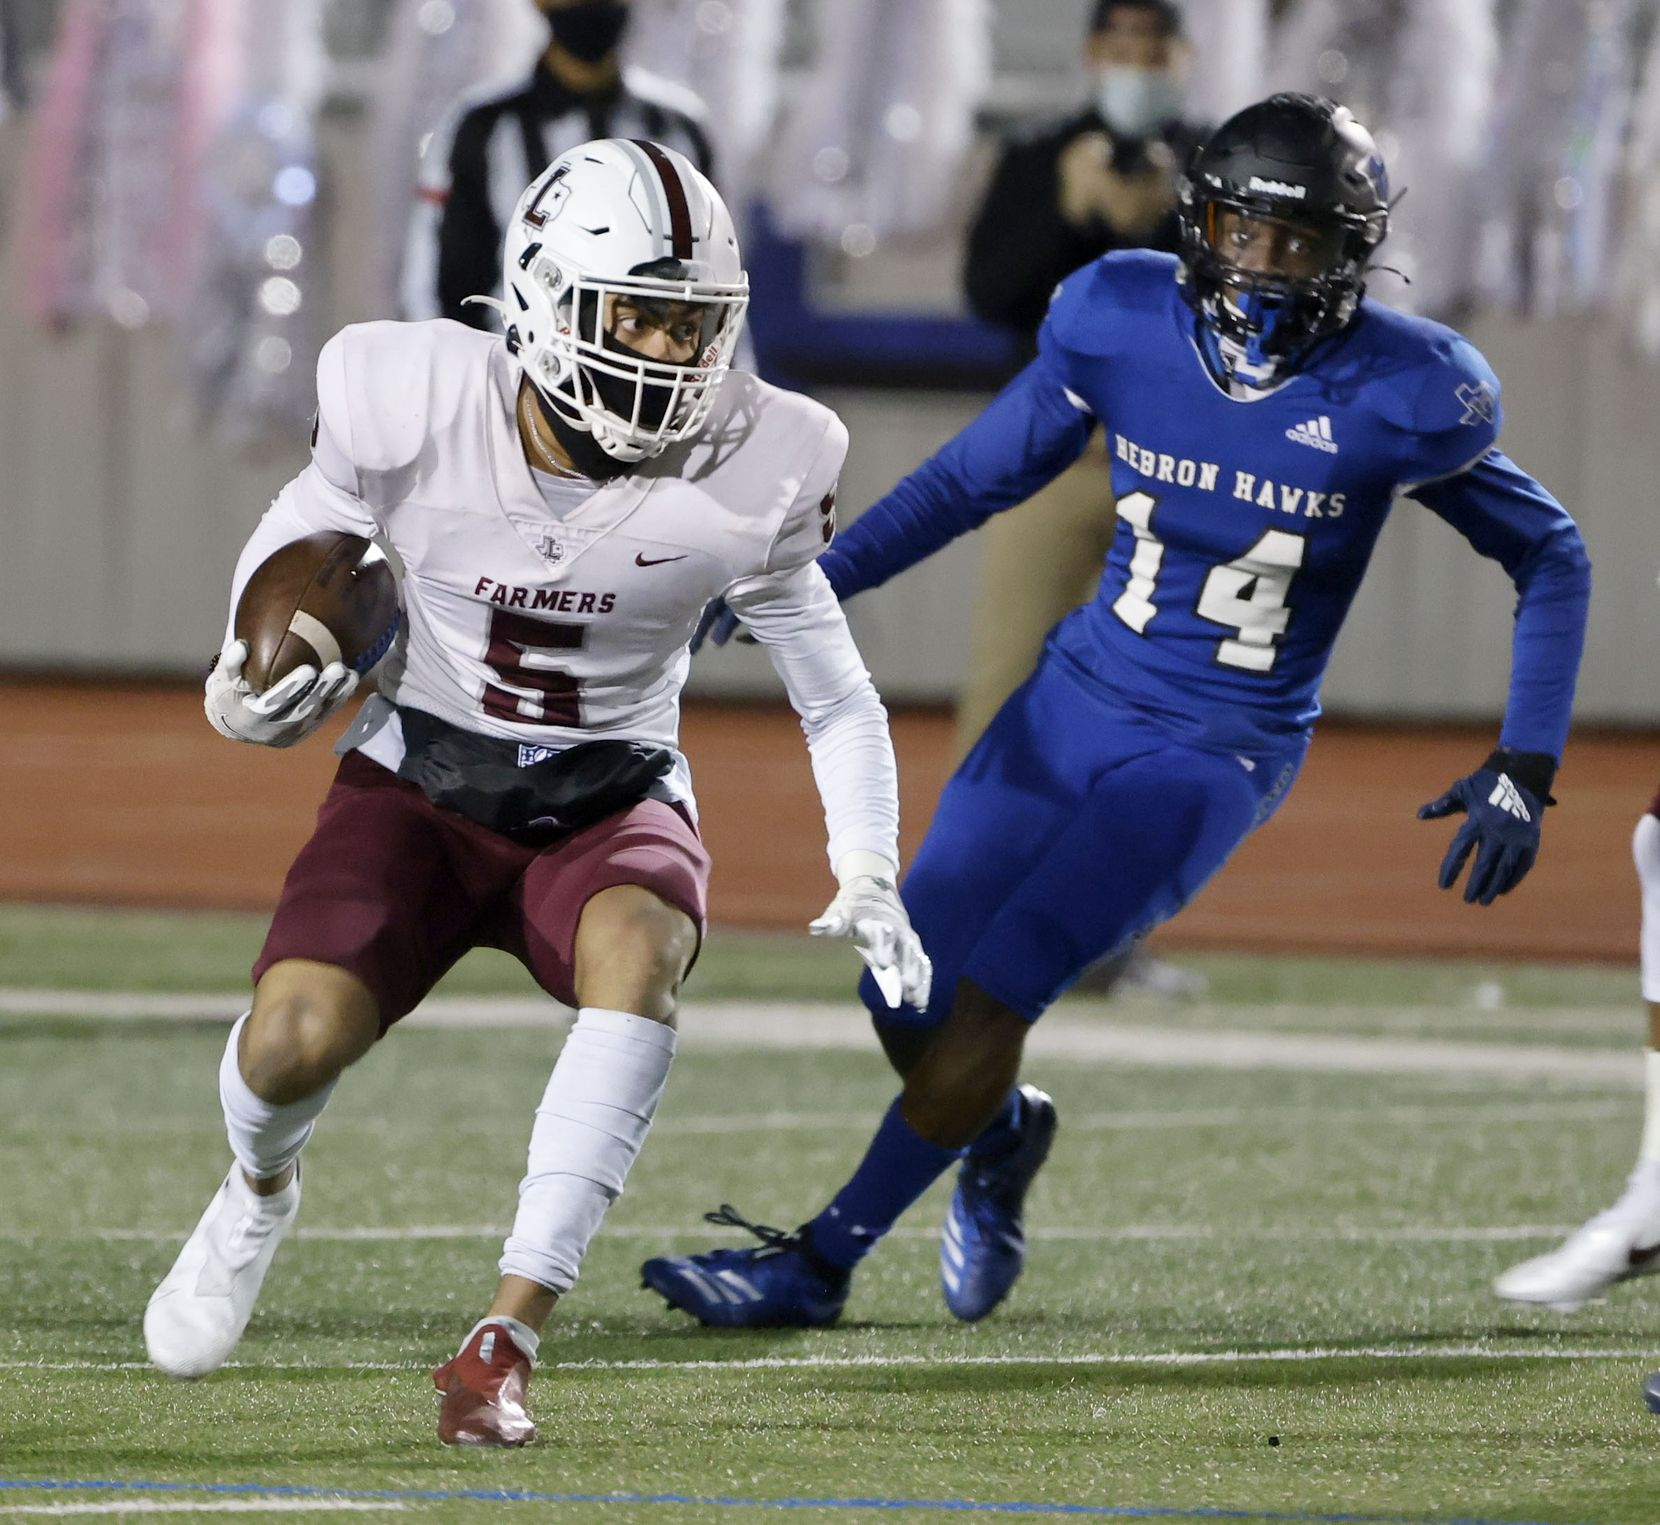 Lewisville receiver Isiah Stevens (5) looks for running room in front of Hebron defender Jonathan Jackson (14) during their District 6-6A high school football game on Dec. 4, 2020. (Michael Ainsworth/Special Contributor)